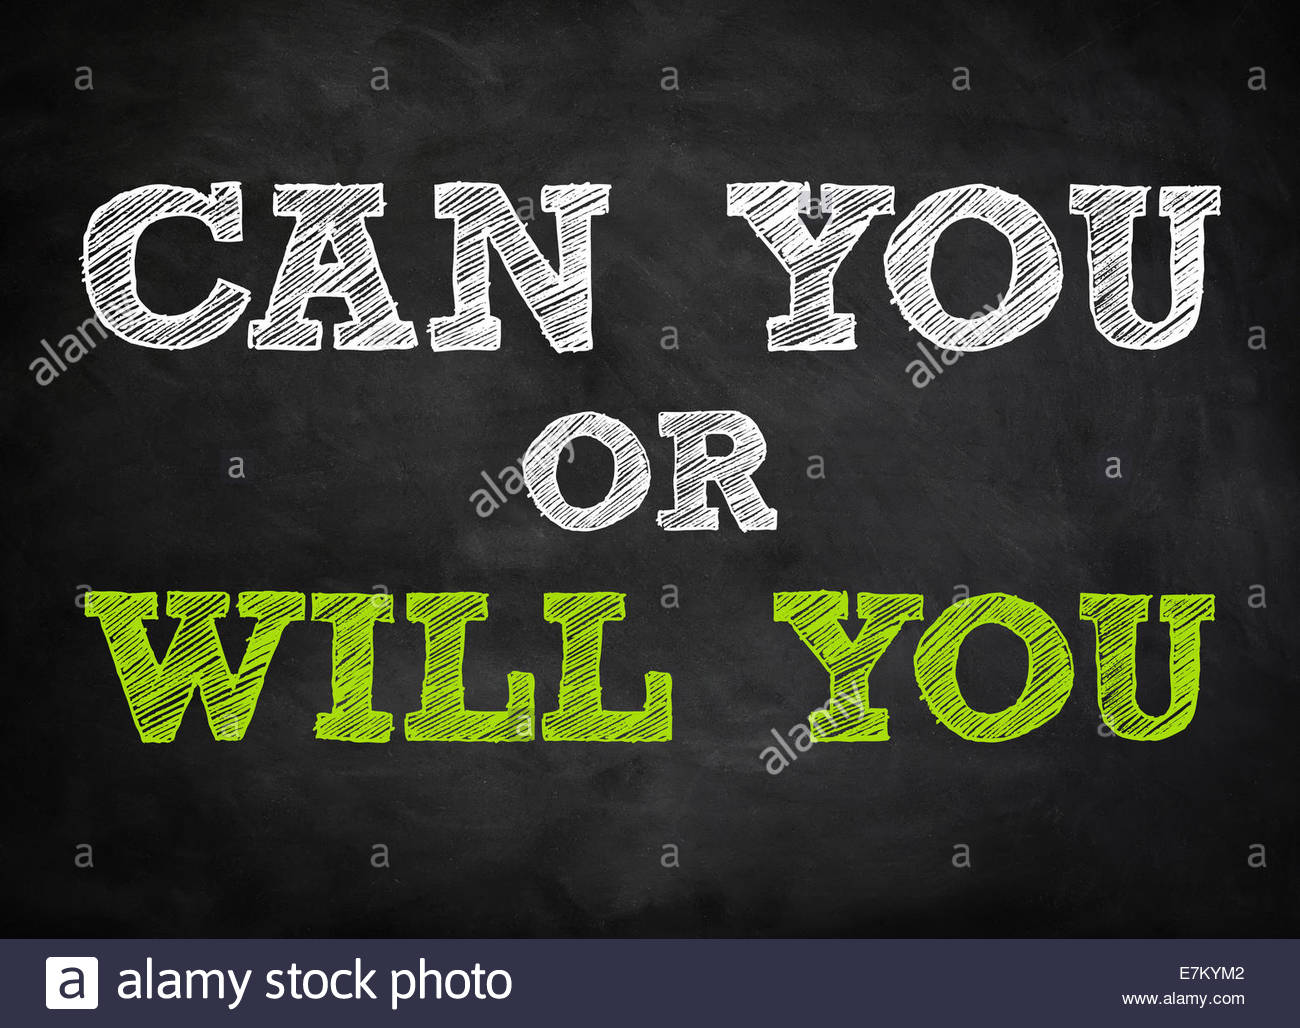 CAN YOU or WILL YOU - chalkboard concept - Stock Image